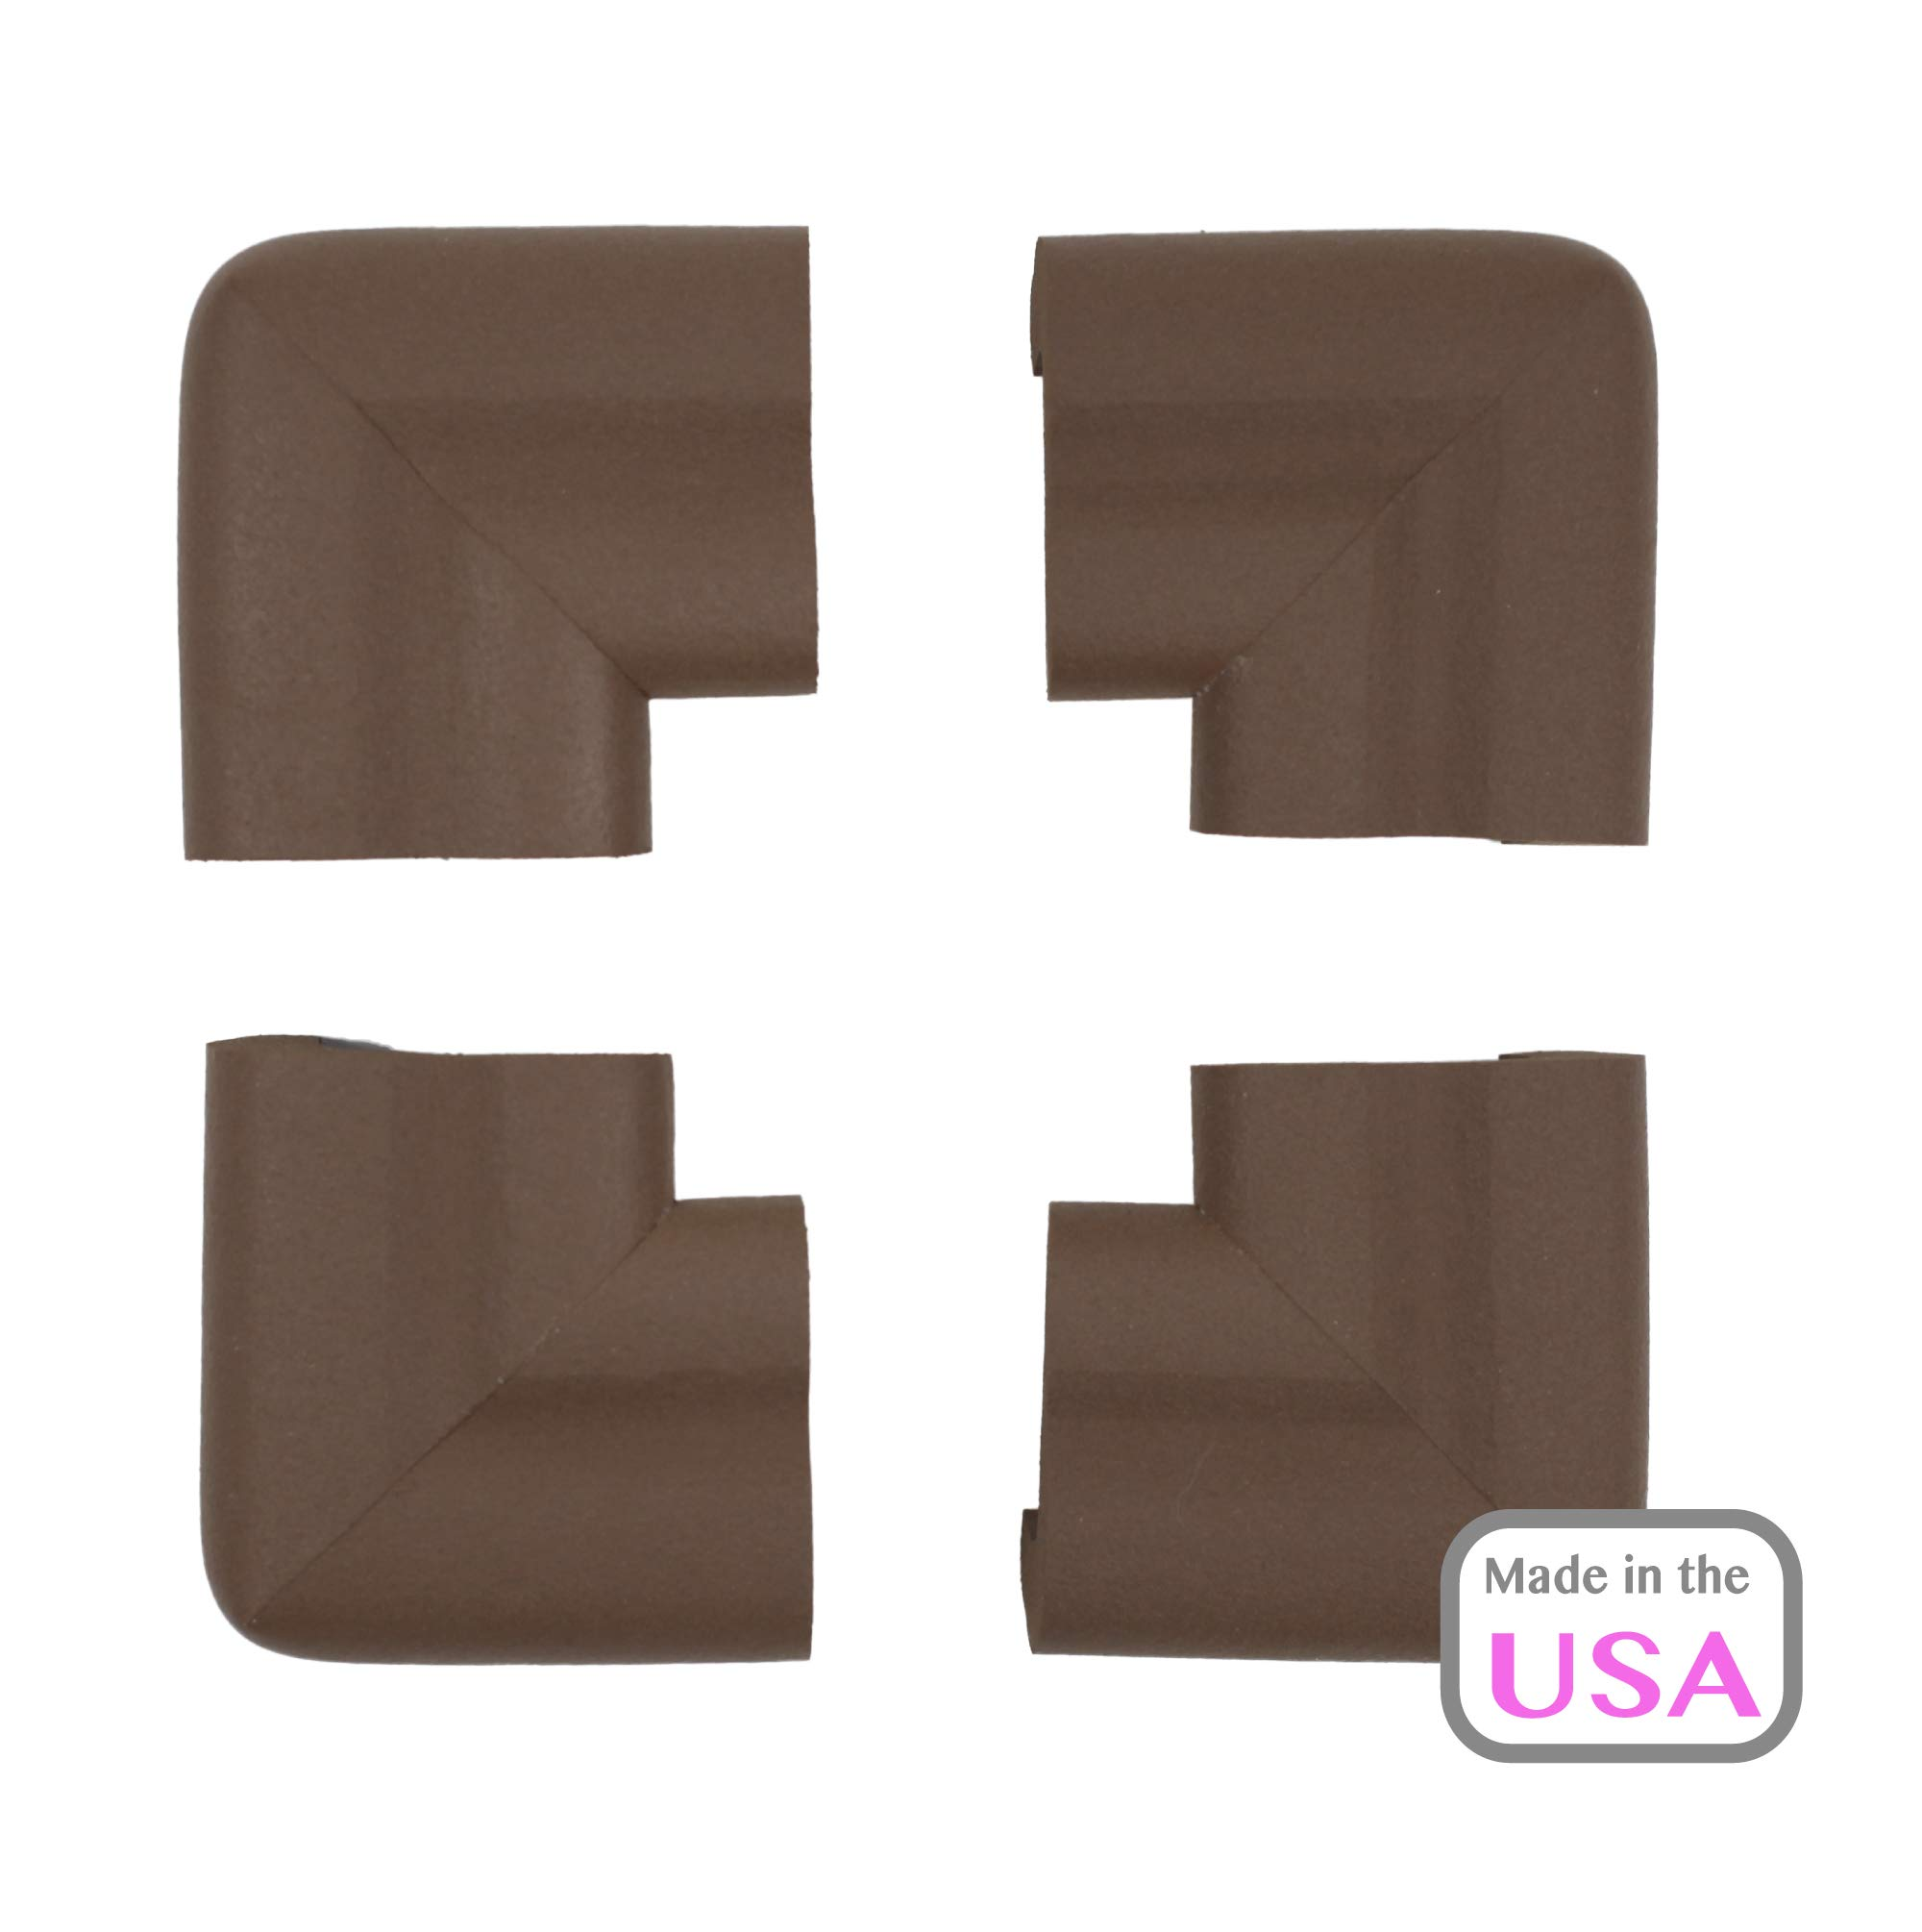 OOPSY Child Safety Jumbo Corner Guard 12 Pack, Brown